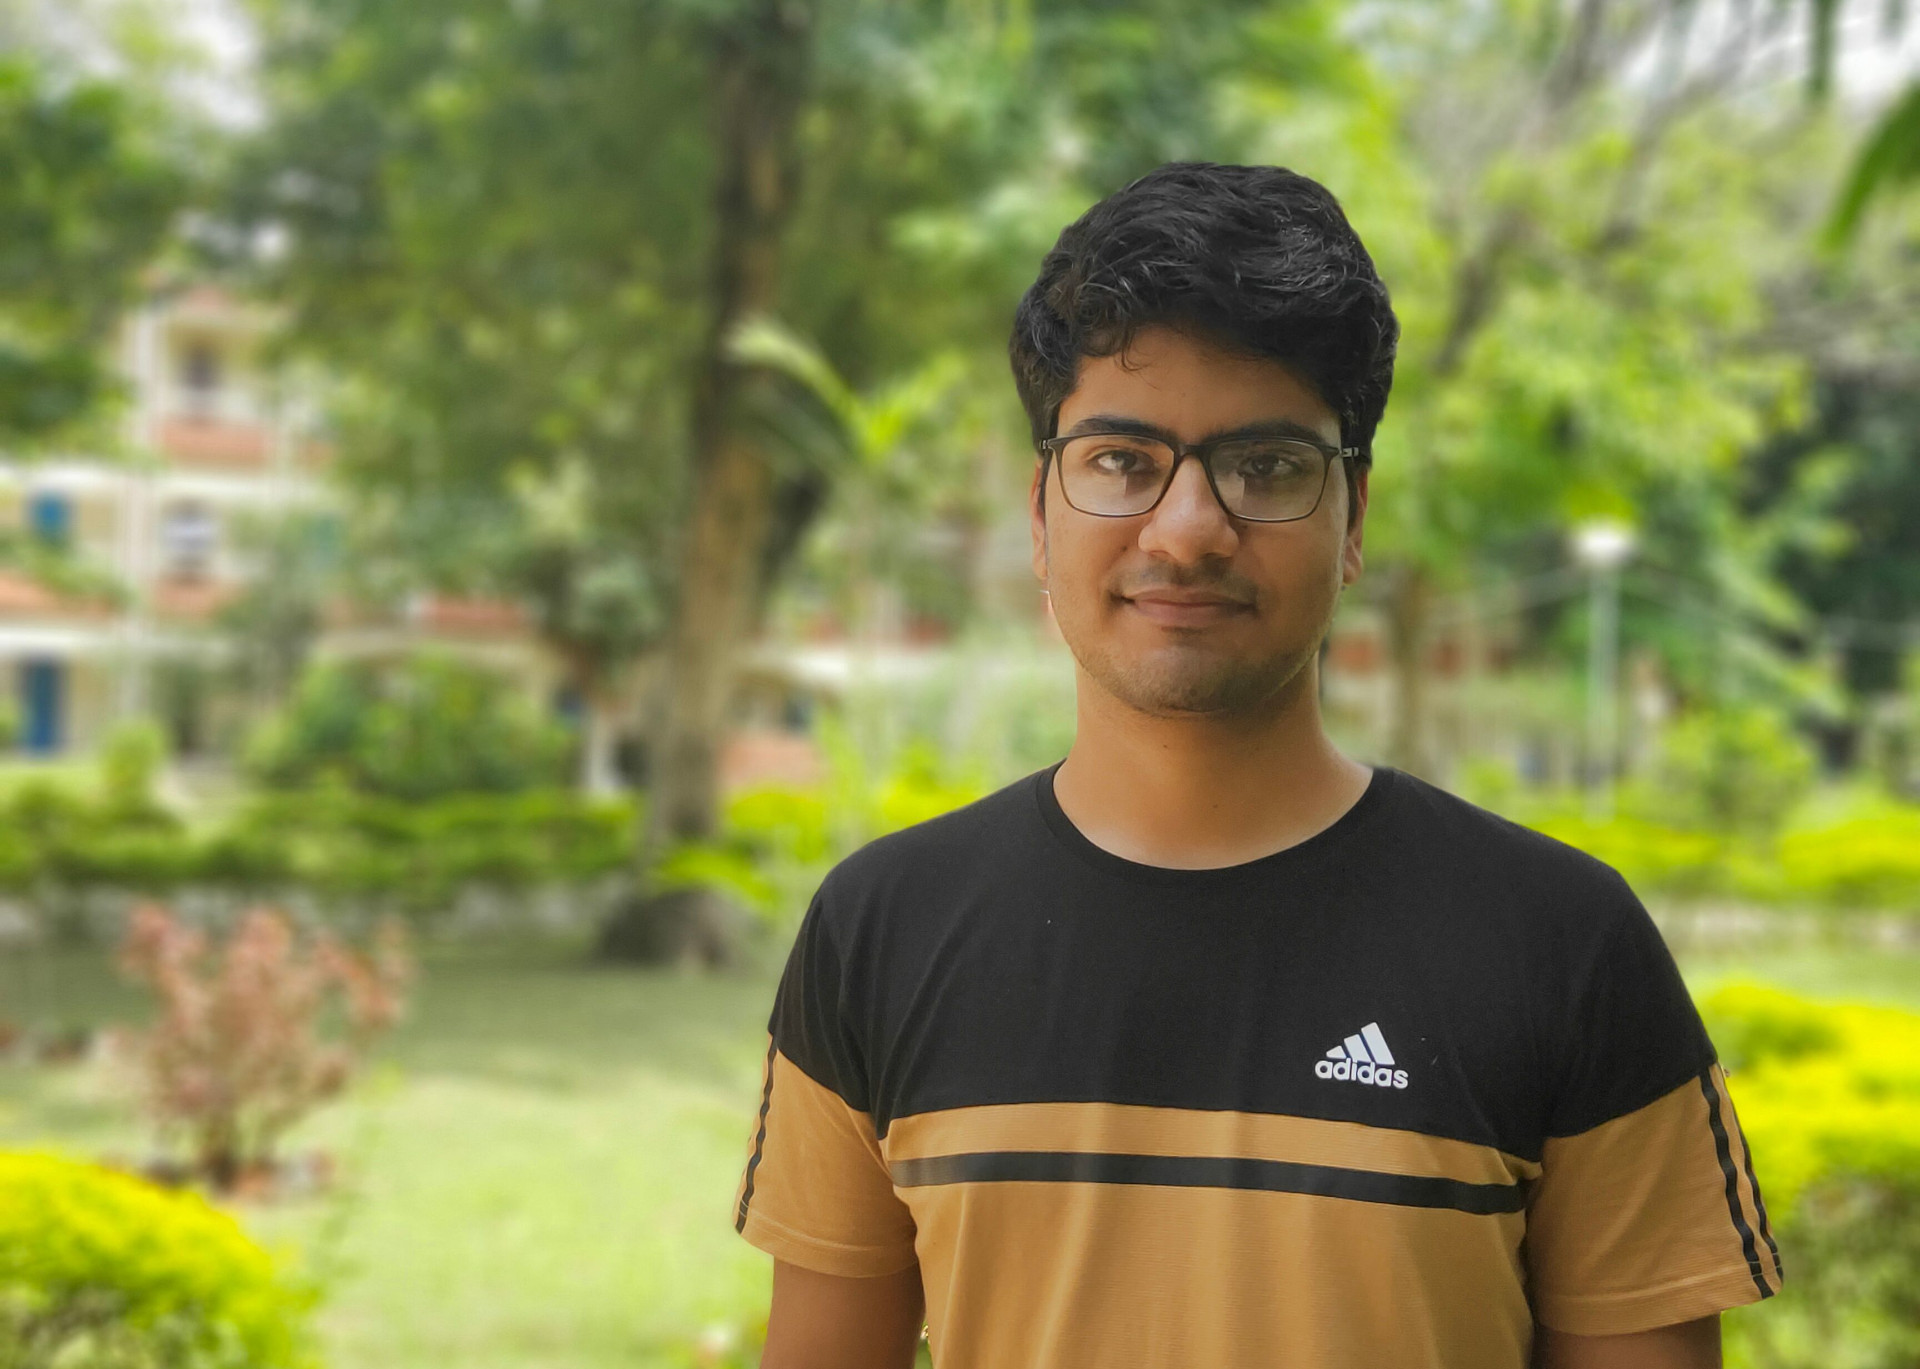 Interview: We Talked to Mohit, This Year's Google Summer of Code Student